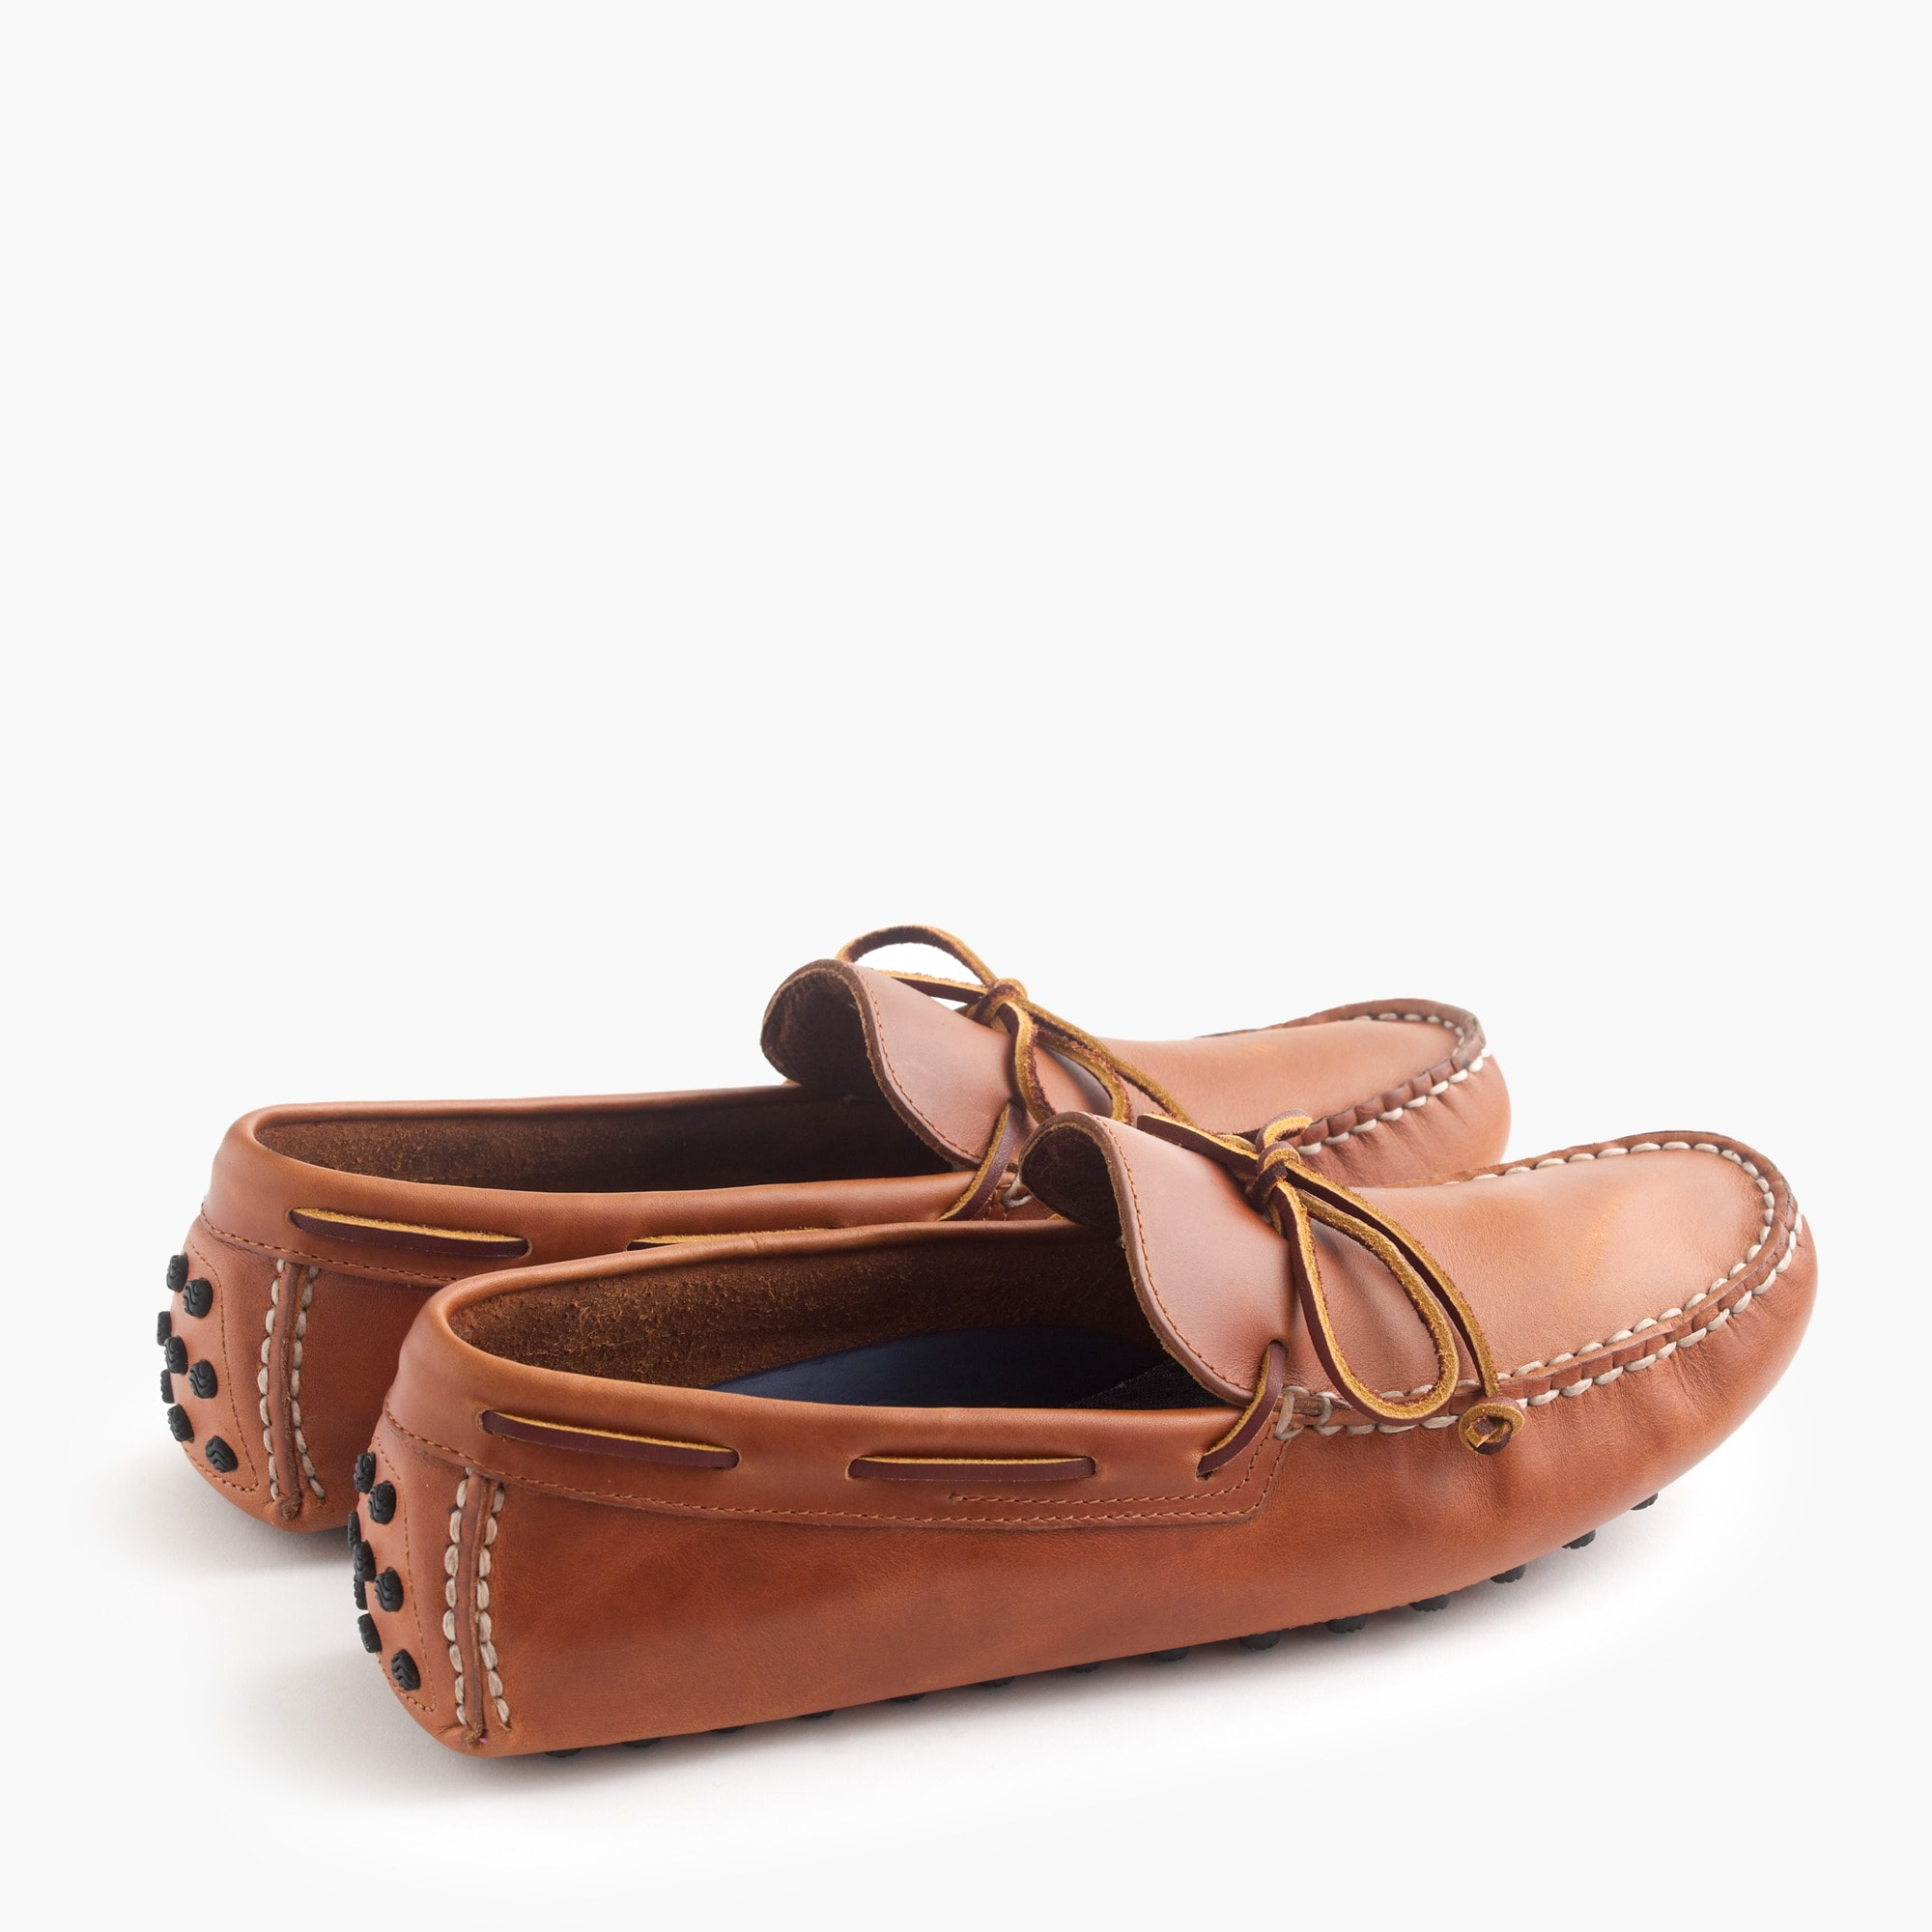 Image 3 for Sperry® for J.Crew driving moccasins